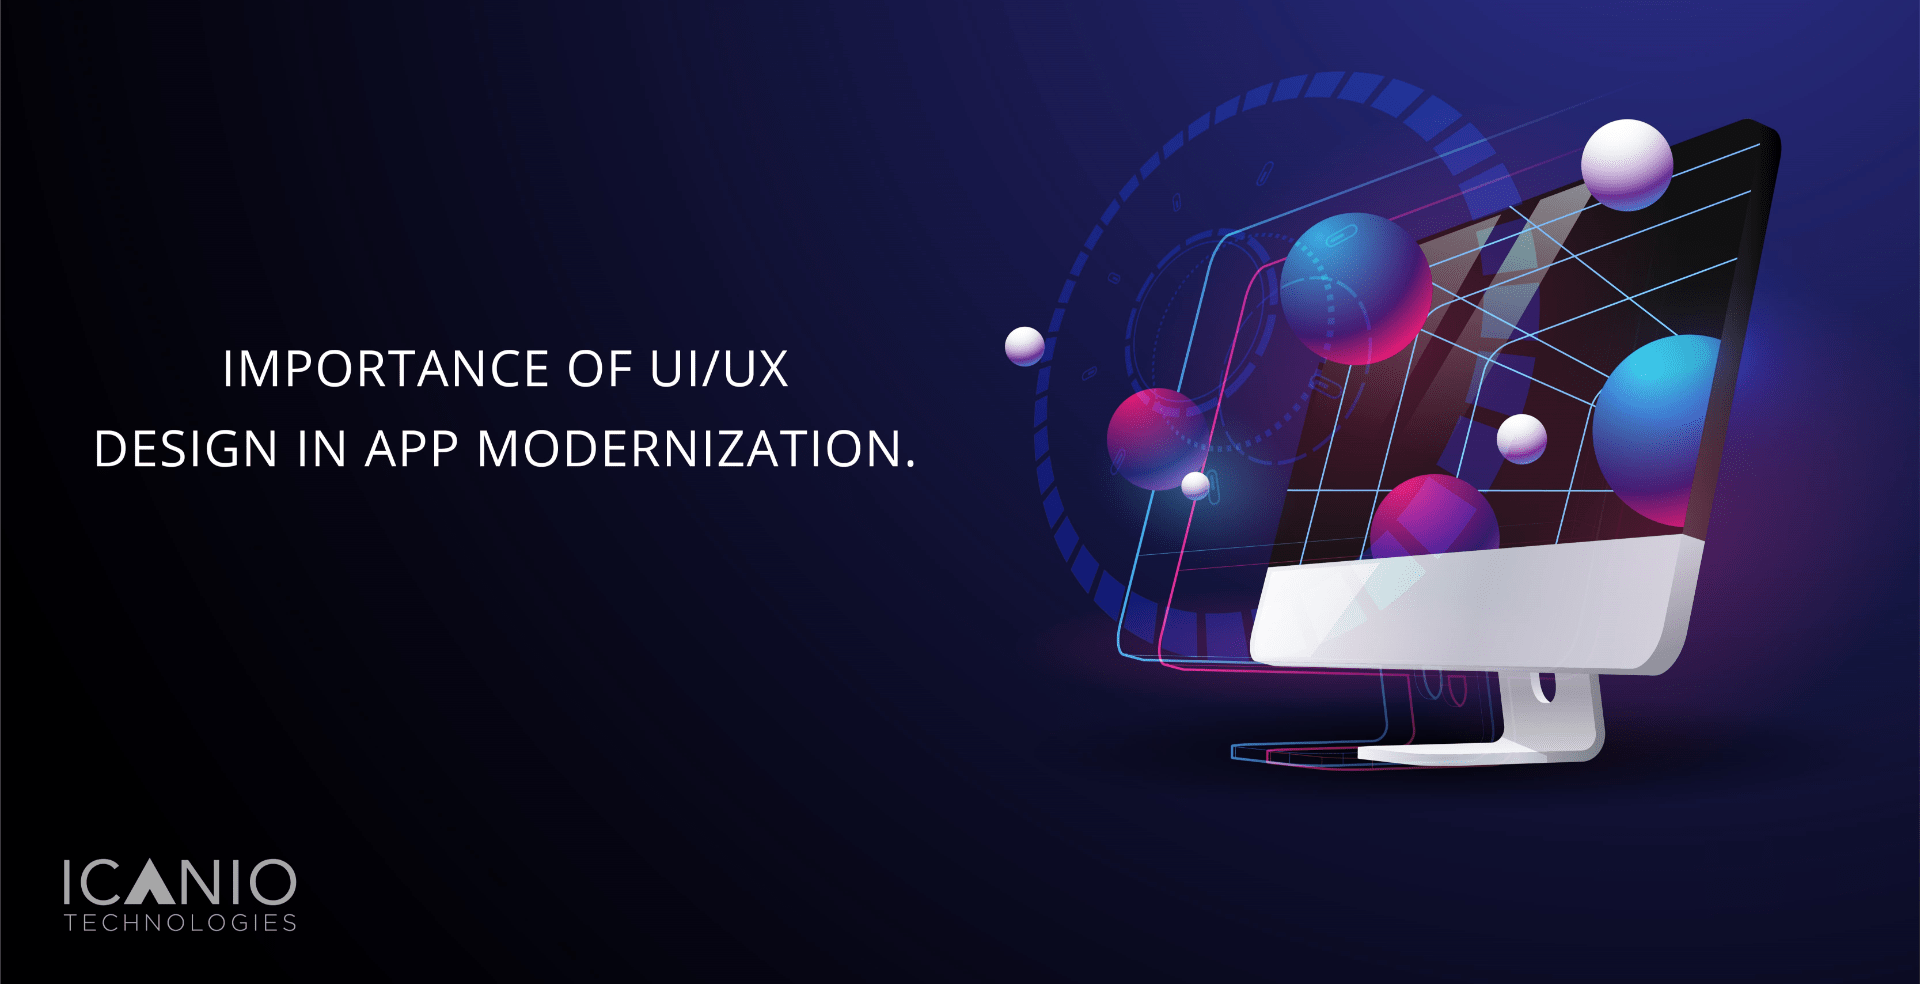 Importance of UI/UX Design in APP Modernization